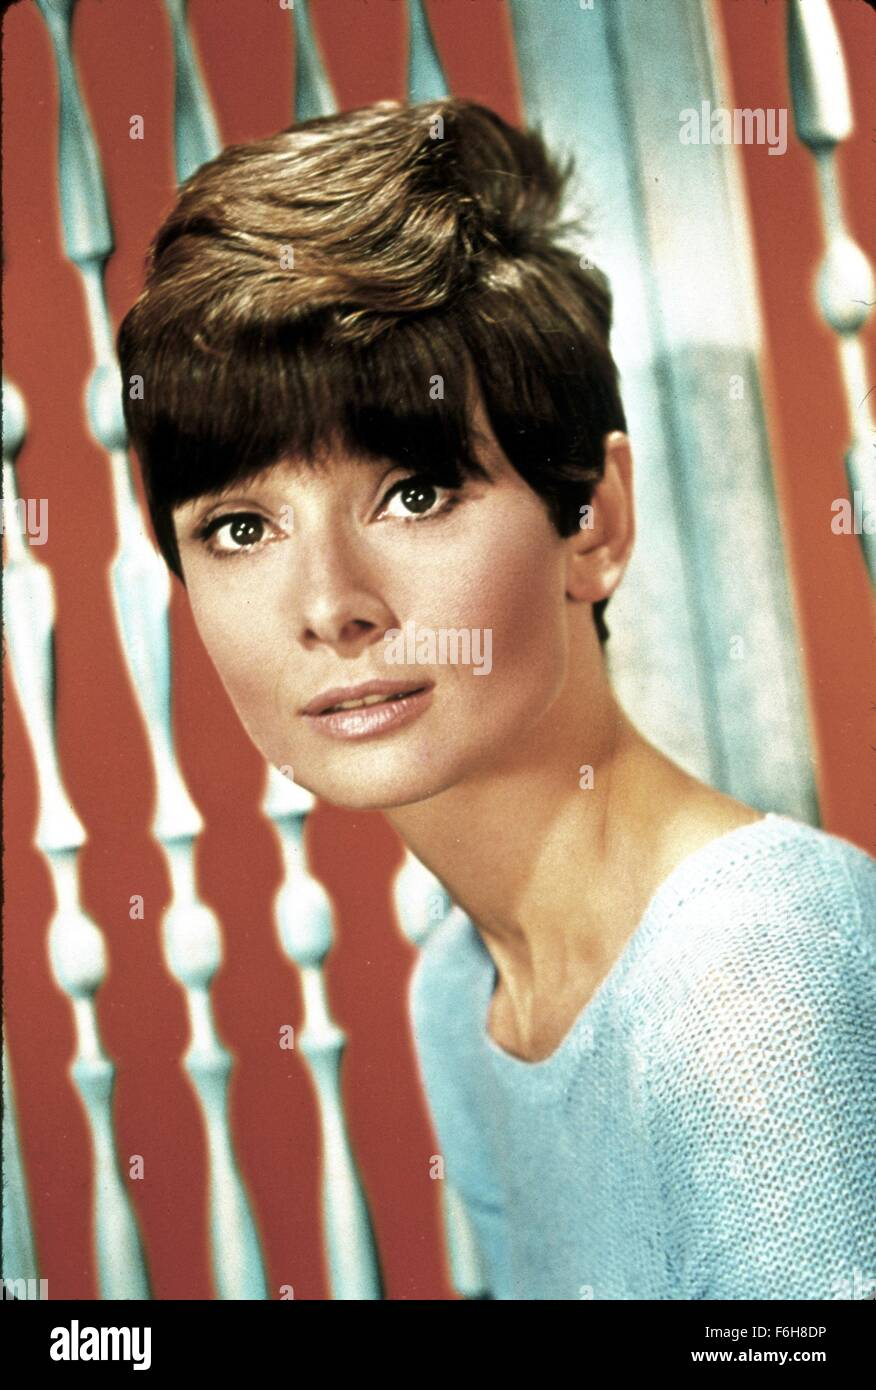 1967, Film Title: WAIT UNTIL DARK, Director: TERENCE YOUNG, Pictured: AUDREY HEPBURN, PORTRAIT, STUDIO, HAIR - SHORT. - Stock Image